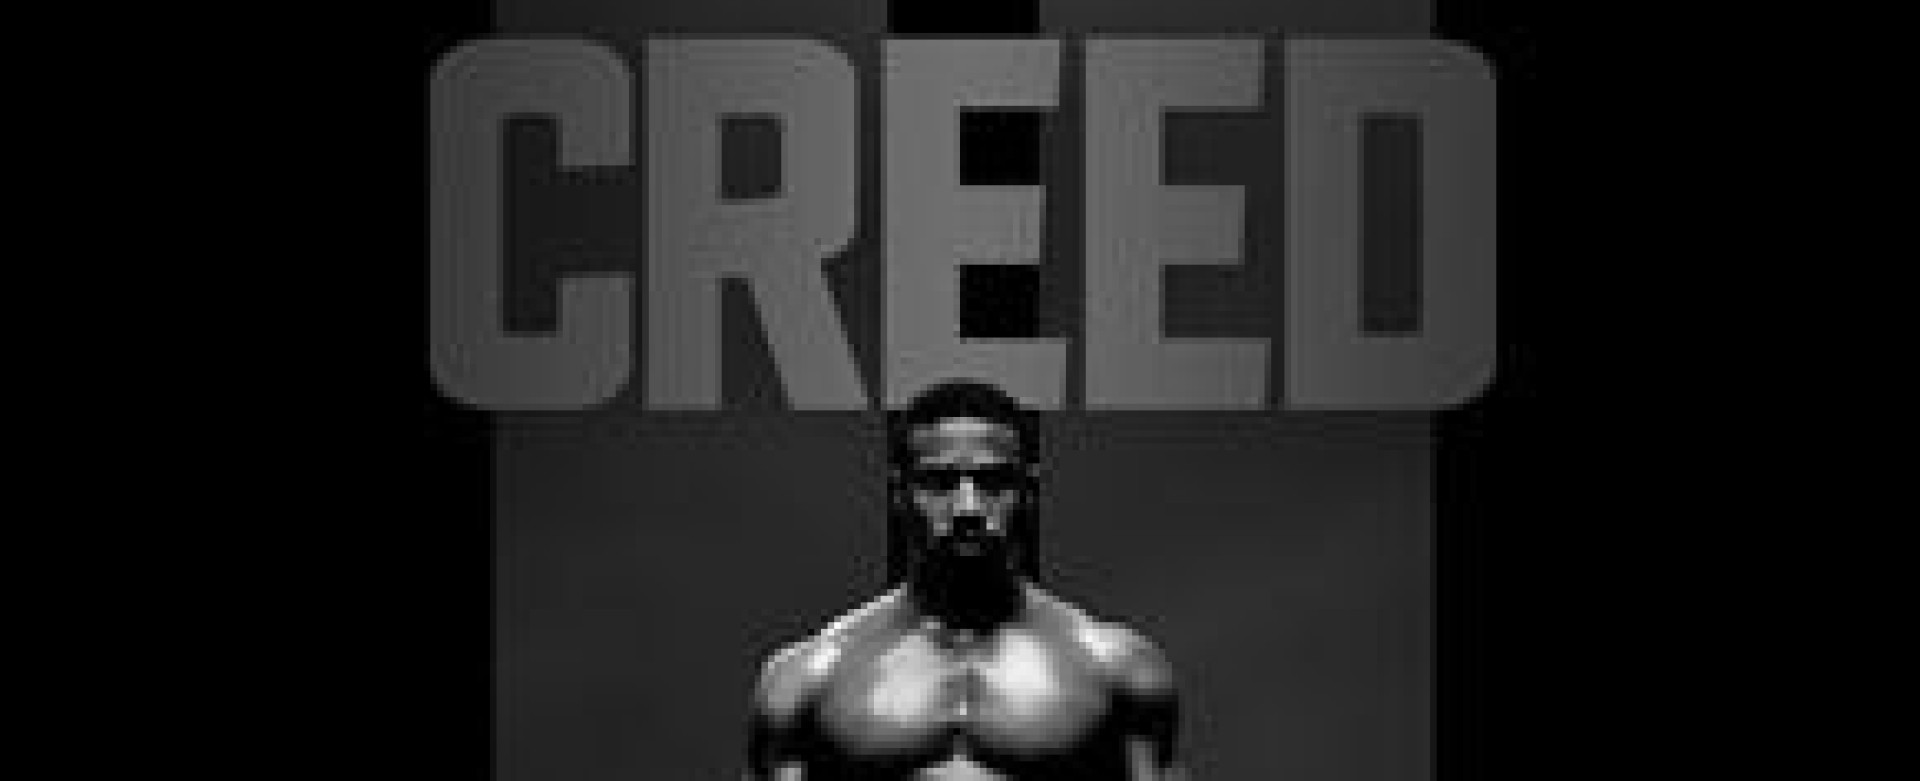 Creed II - 2D